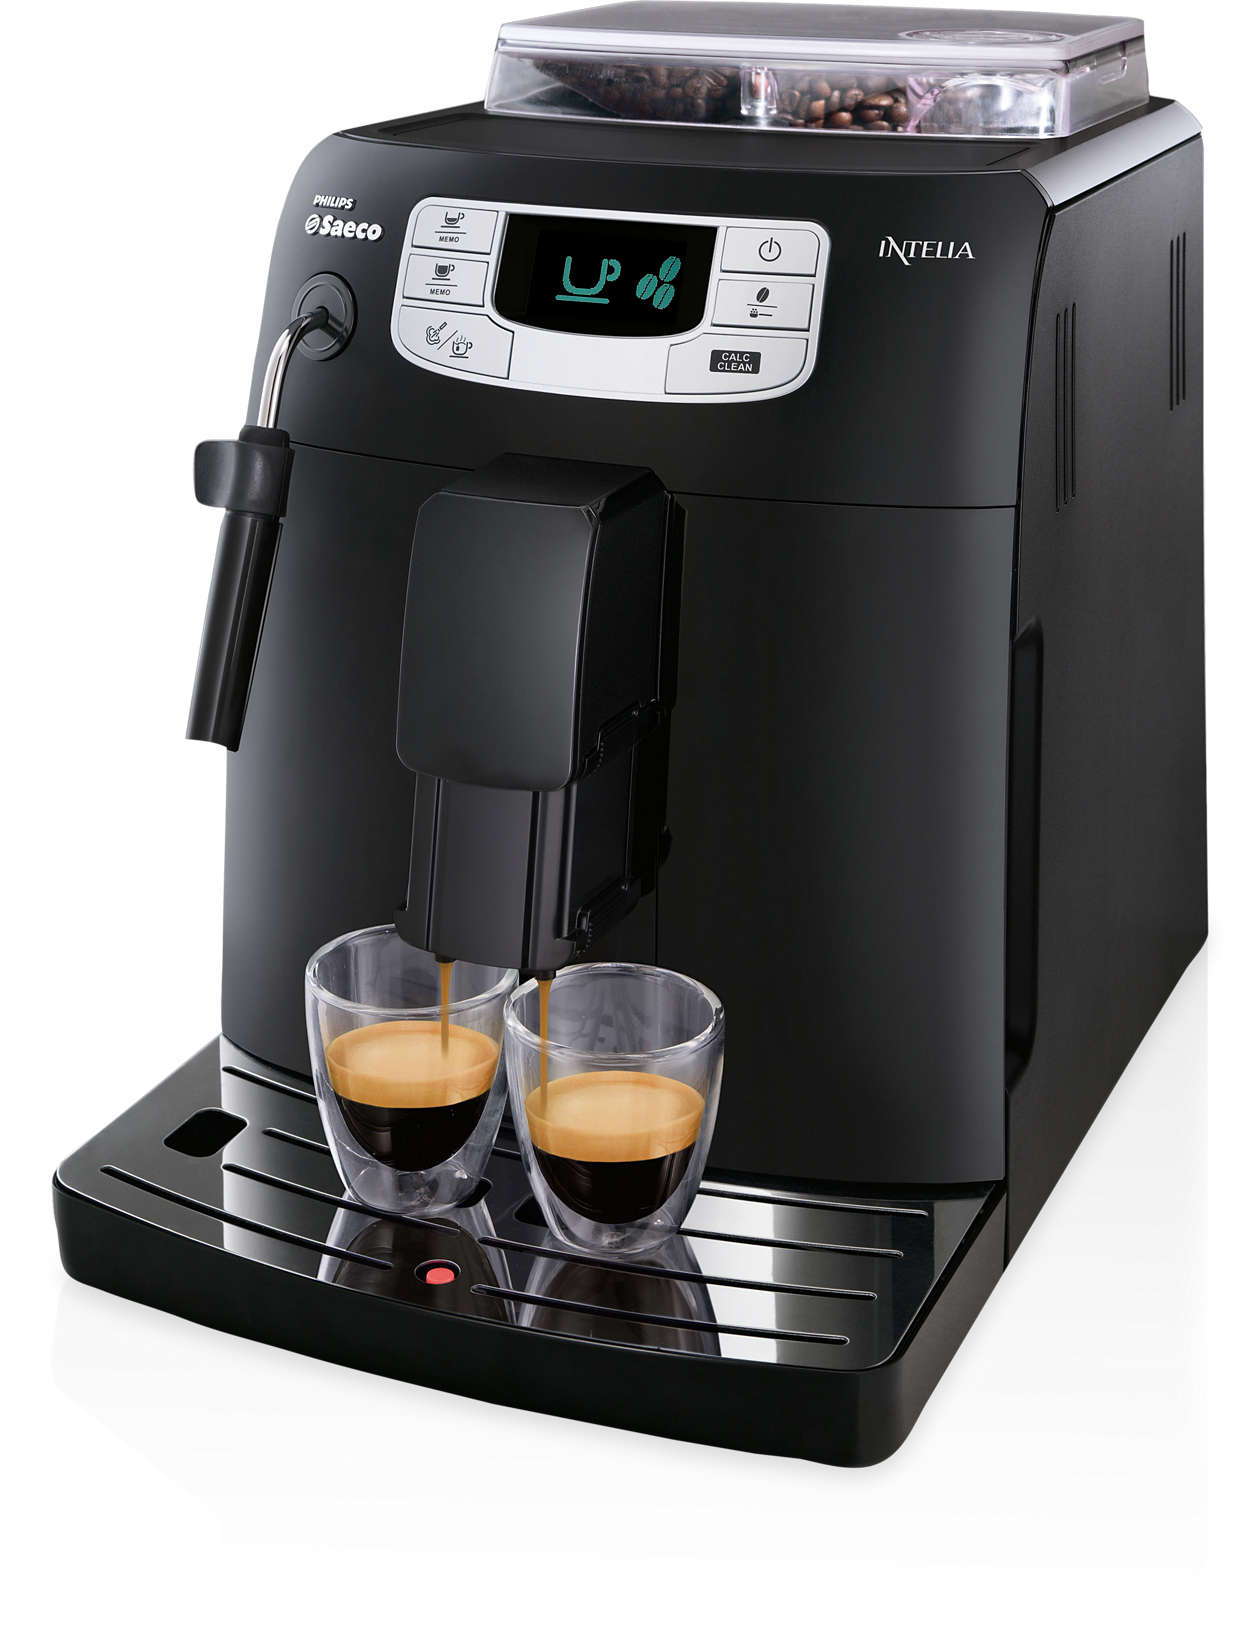 intelia super automatic espresso machine hd8751 47 saeco. Black Bedroom Furniture Sets. Home Design Ideas